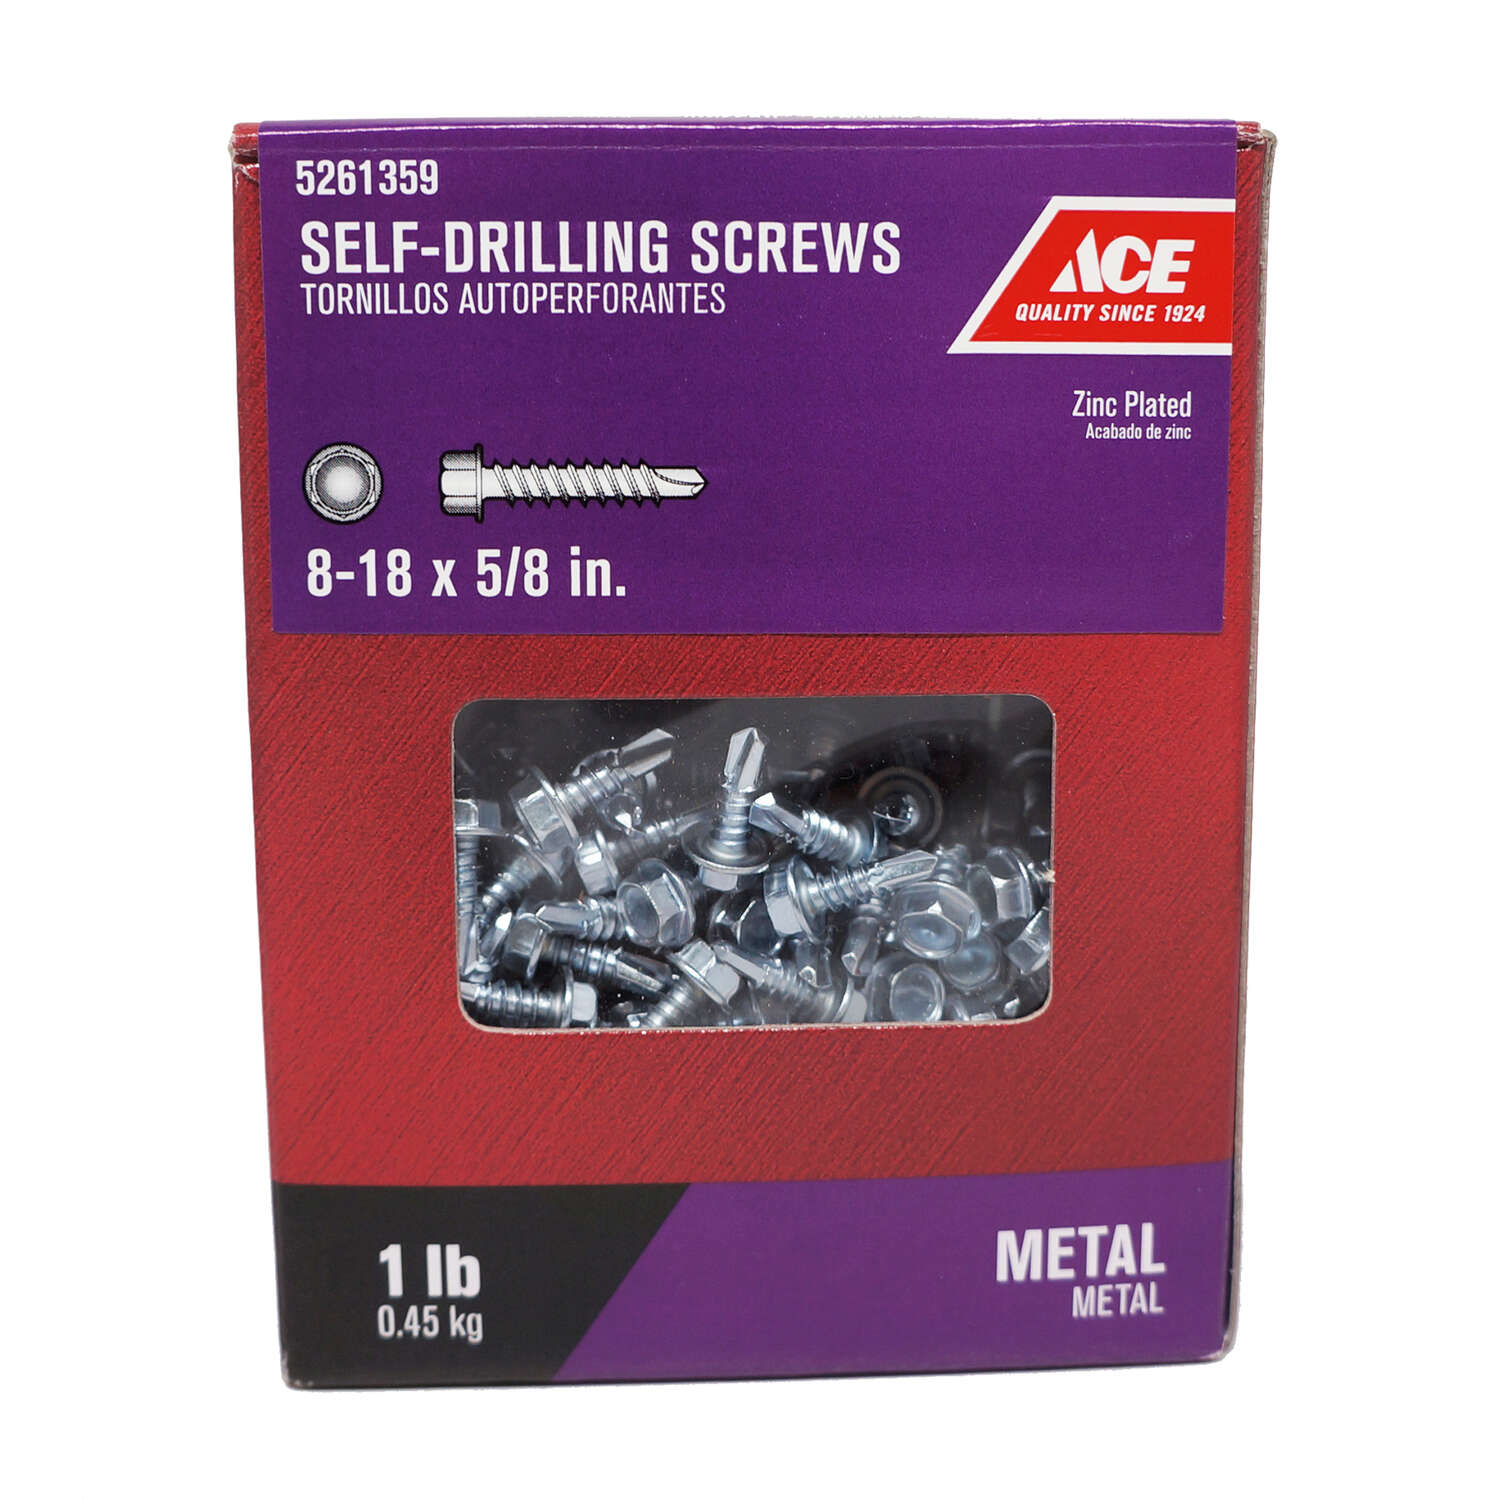 Ace  No. 8-18   x 5/8 in. L Hex Washer Head Zinc-Plated  Steel  Self- Drilling Screws  1 lb.